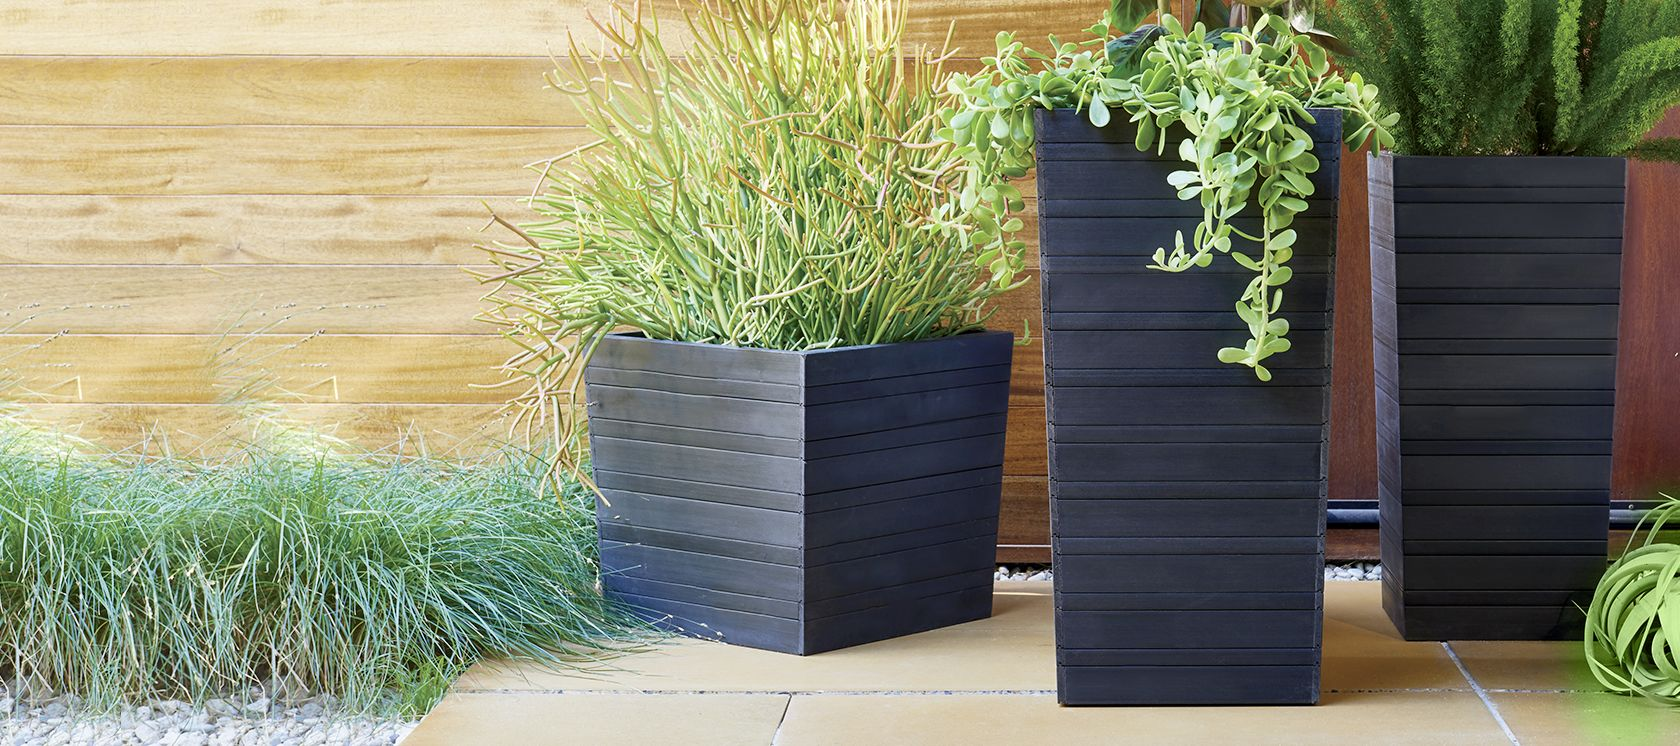 Crate and barrel friends and family - Outdoor Accessories